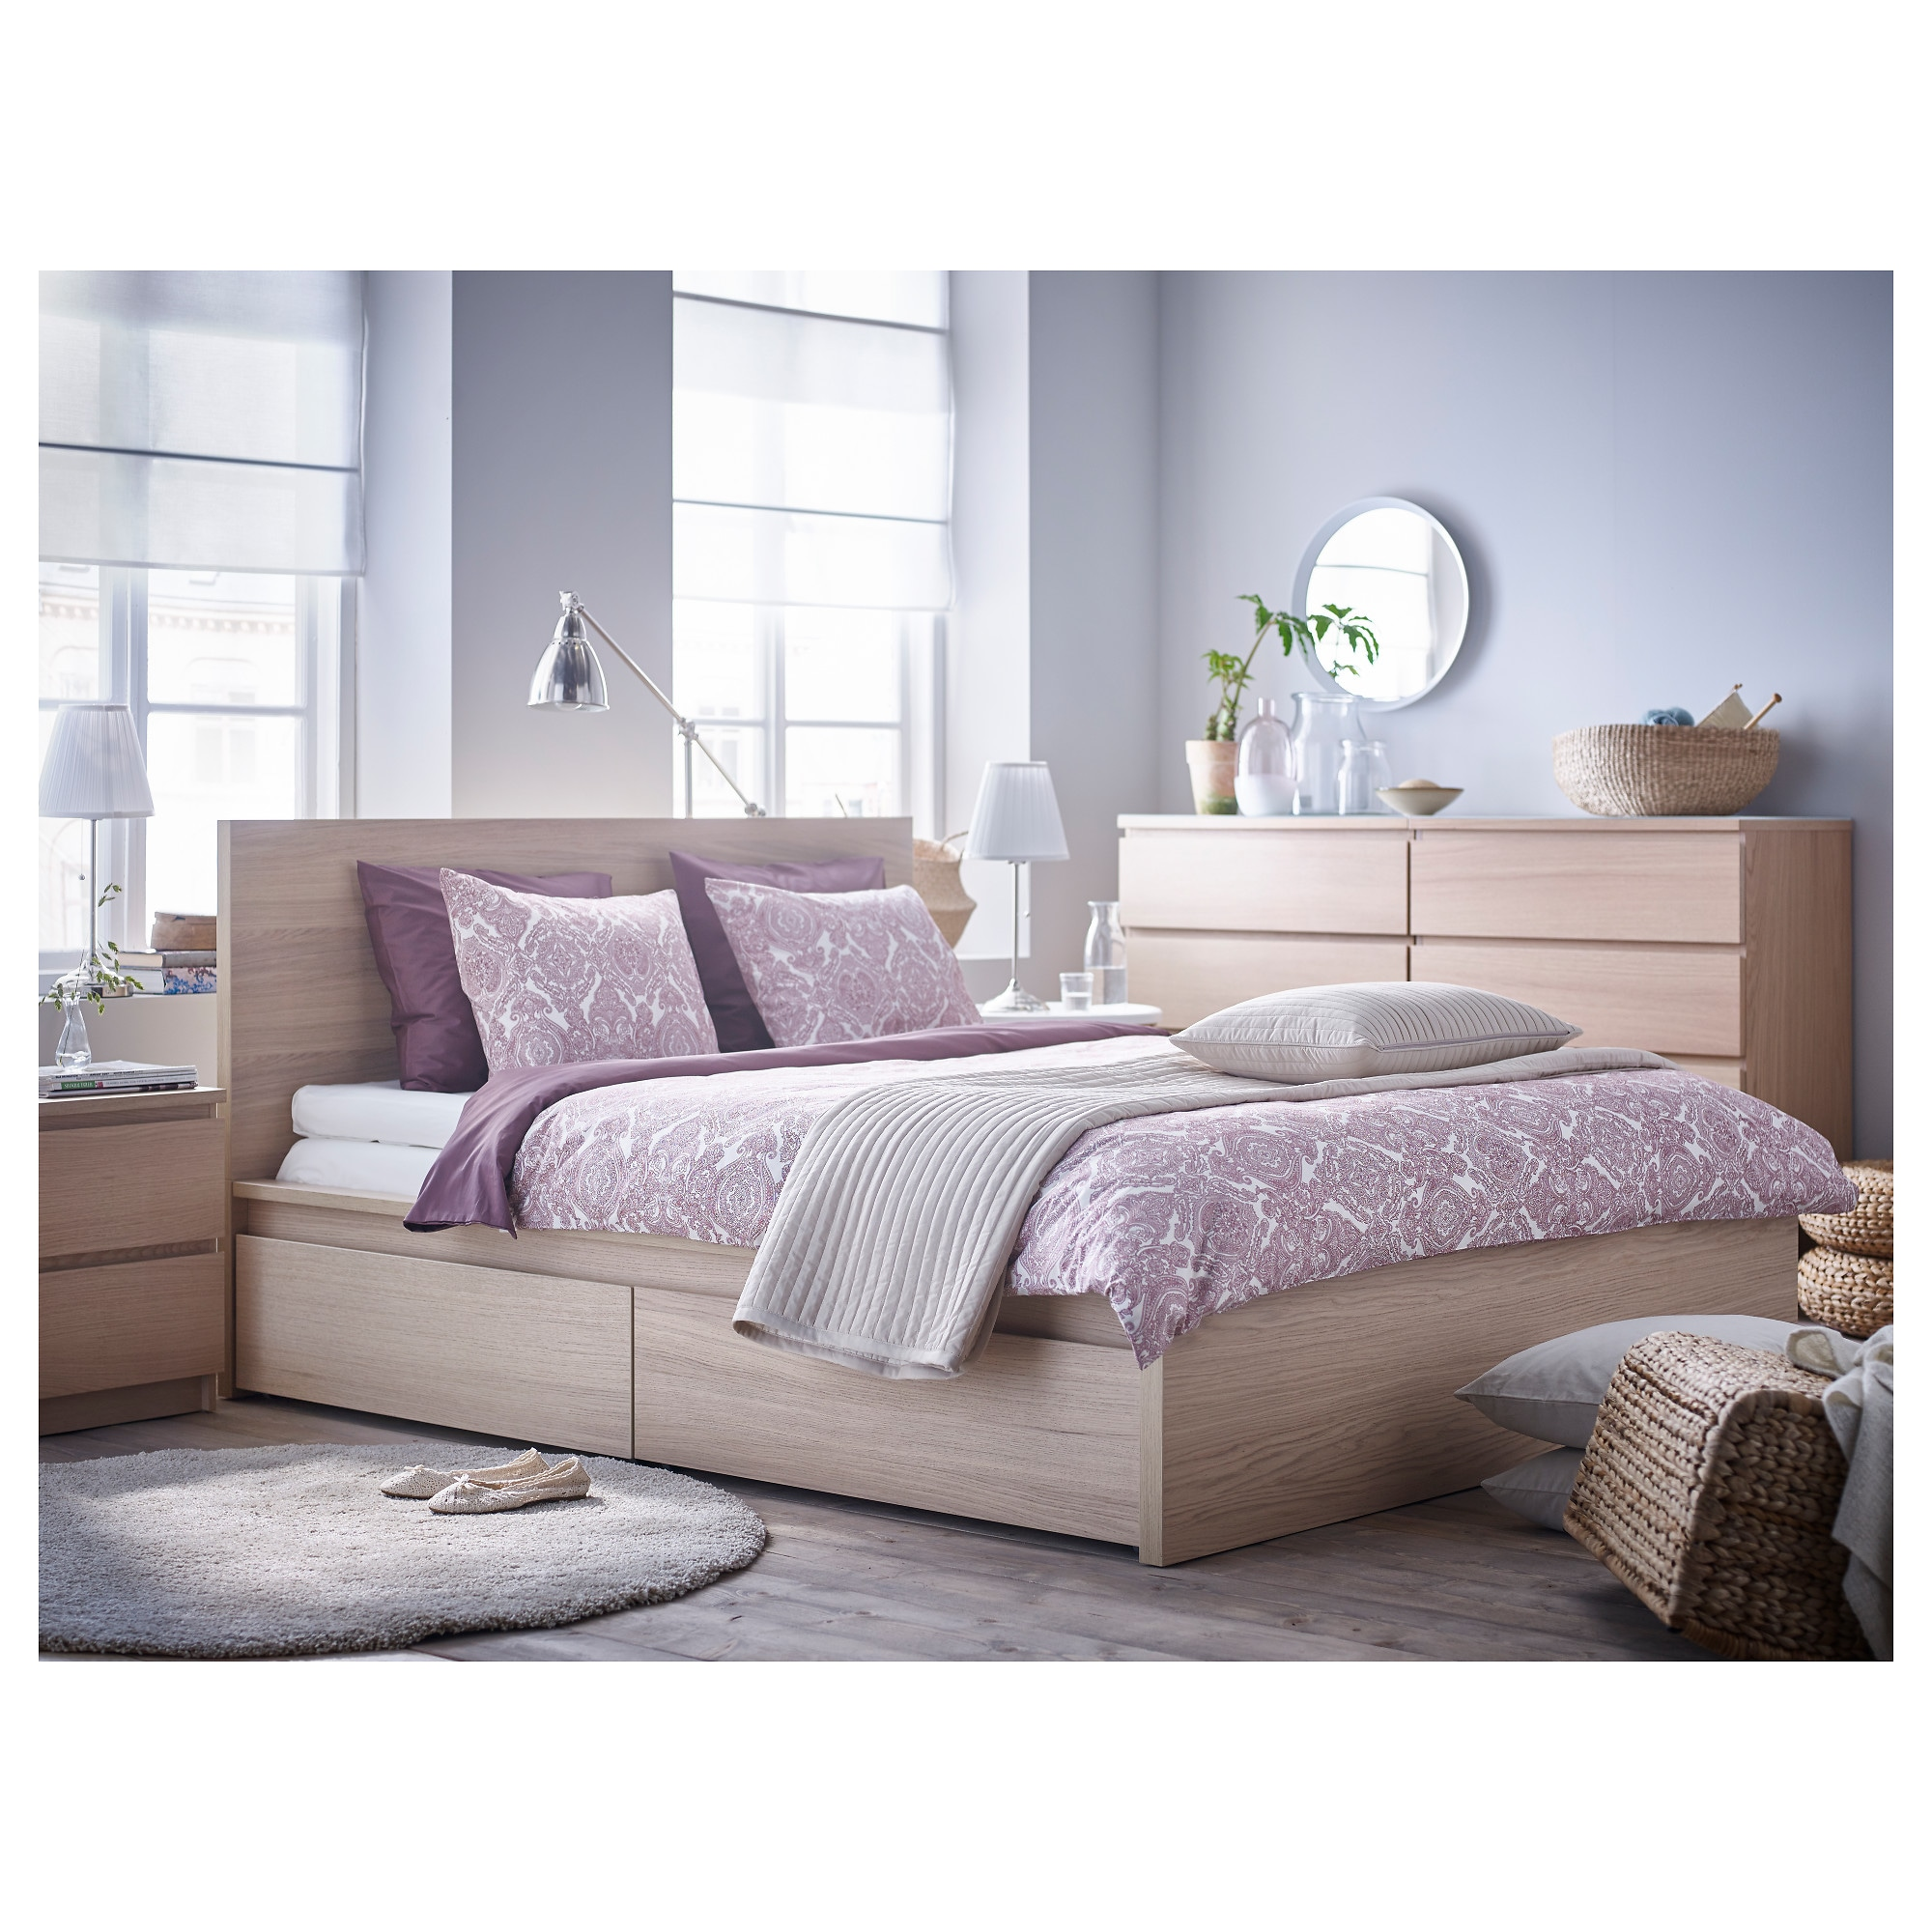 Bed frame with storage - Bed Frame With Storage 40